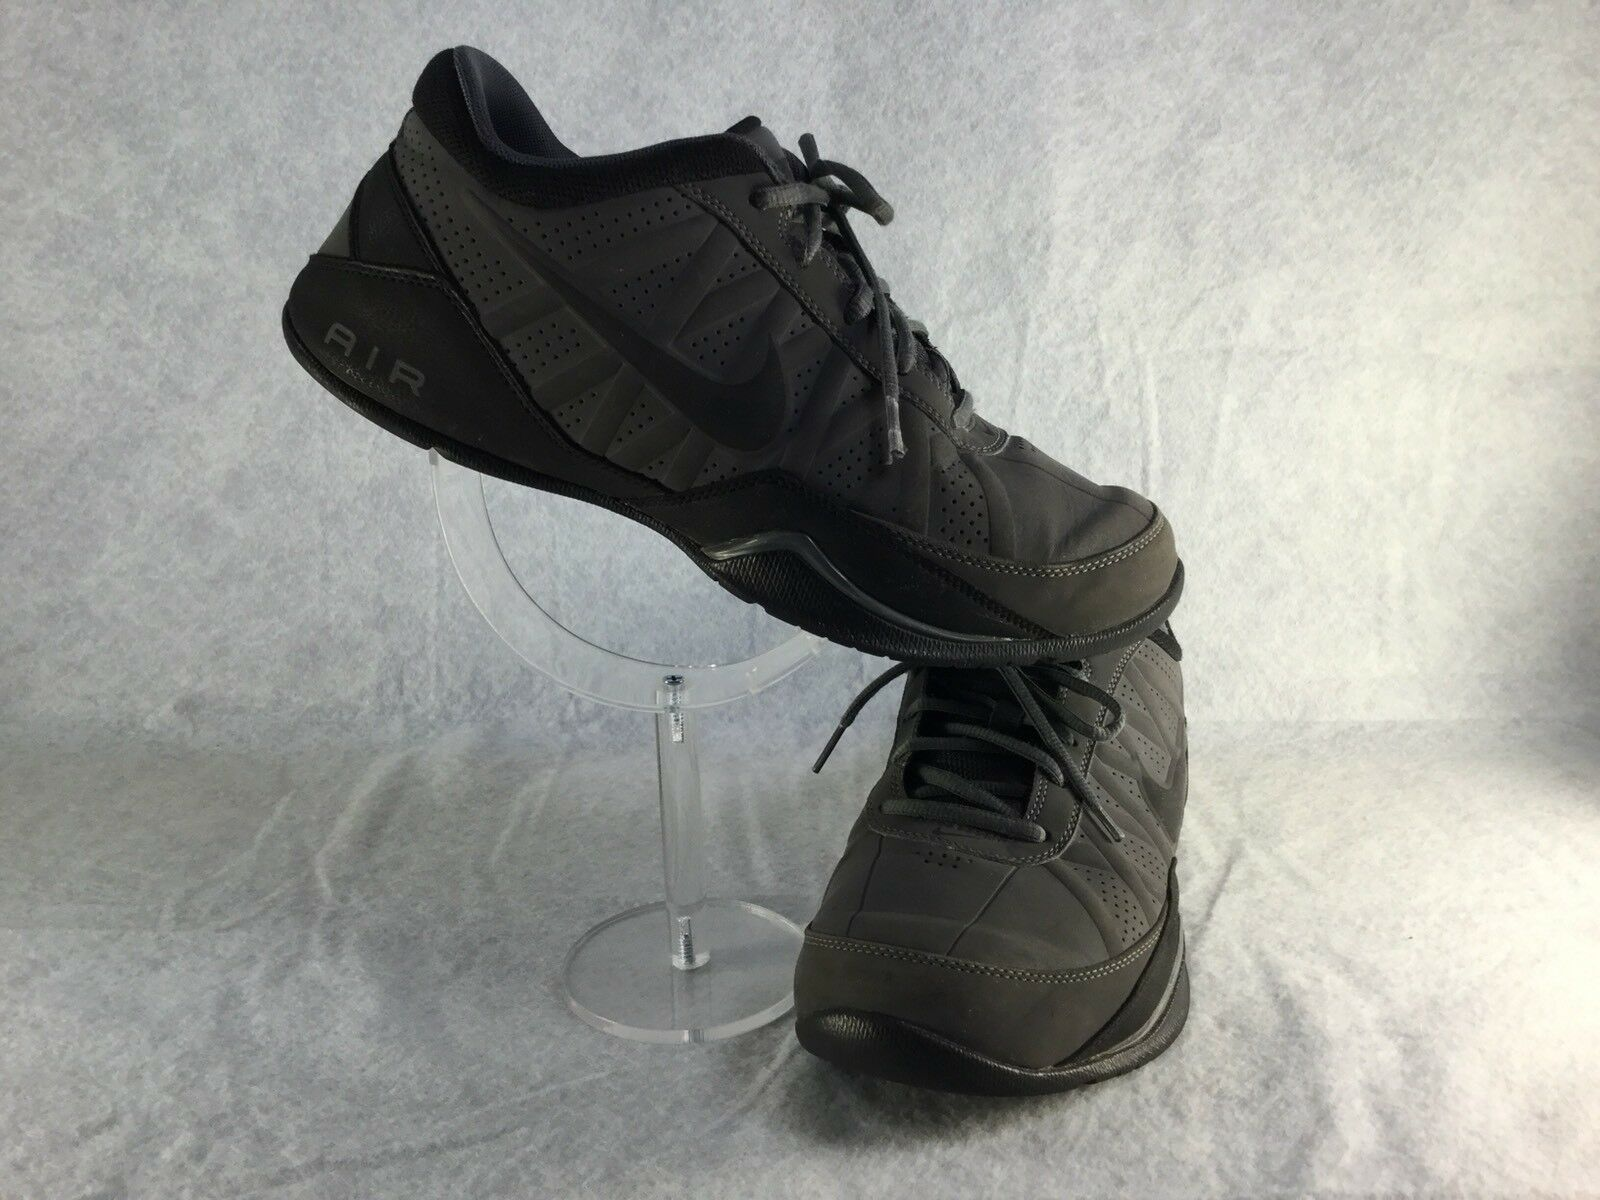 2012 Nike Air Ring Leader [SB59] Gray/Black Low Basketball Shoes size 7.5 [SB59] Leader 75c858